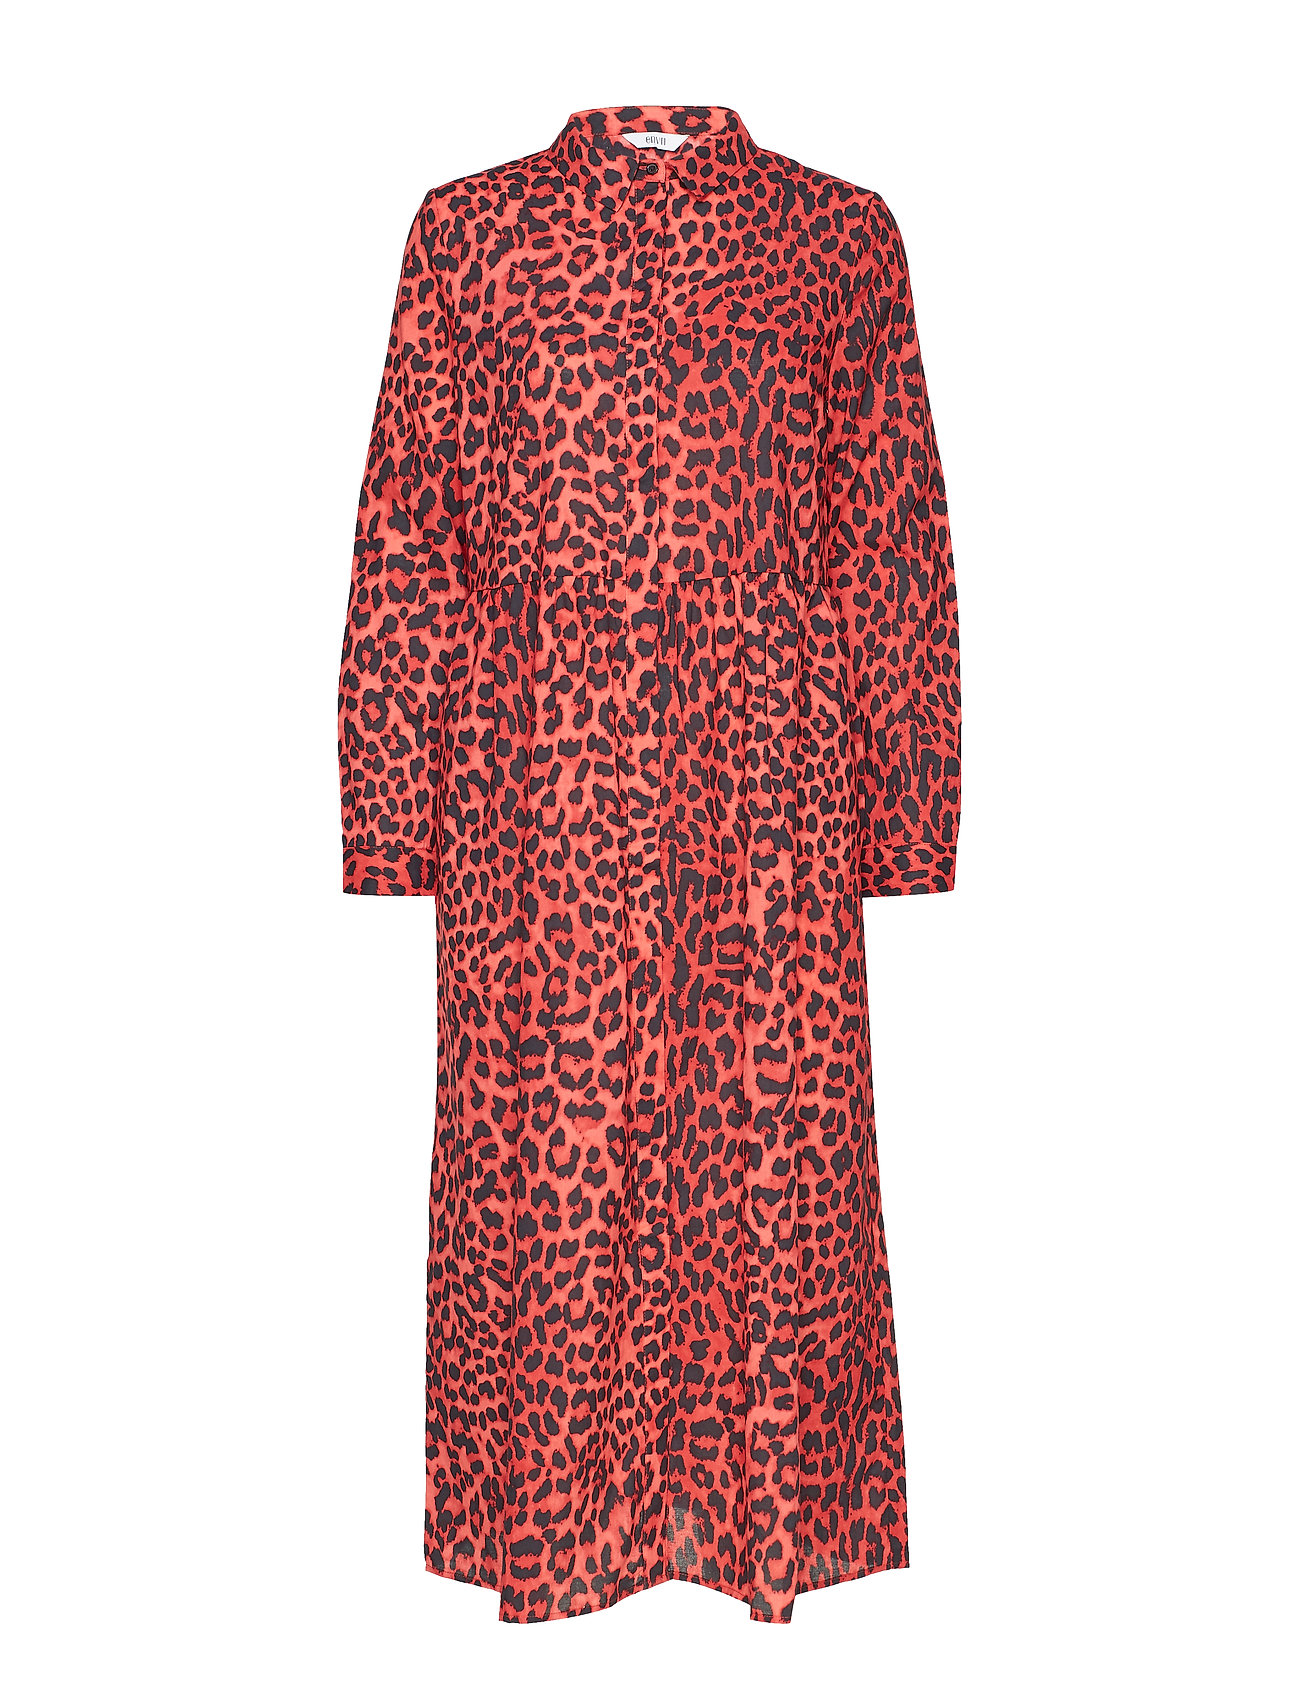 Envii ENHARRY LS MAXI DRESS AOP 6629 - SCARLET LEO